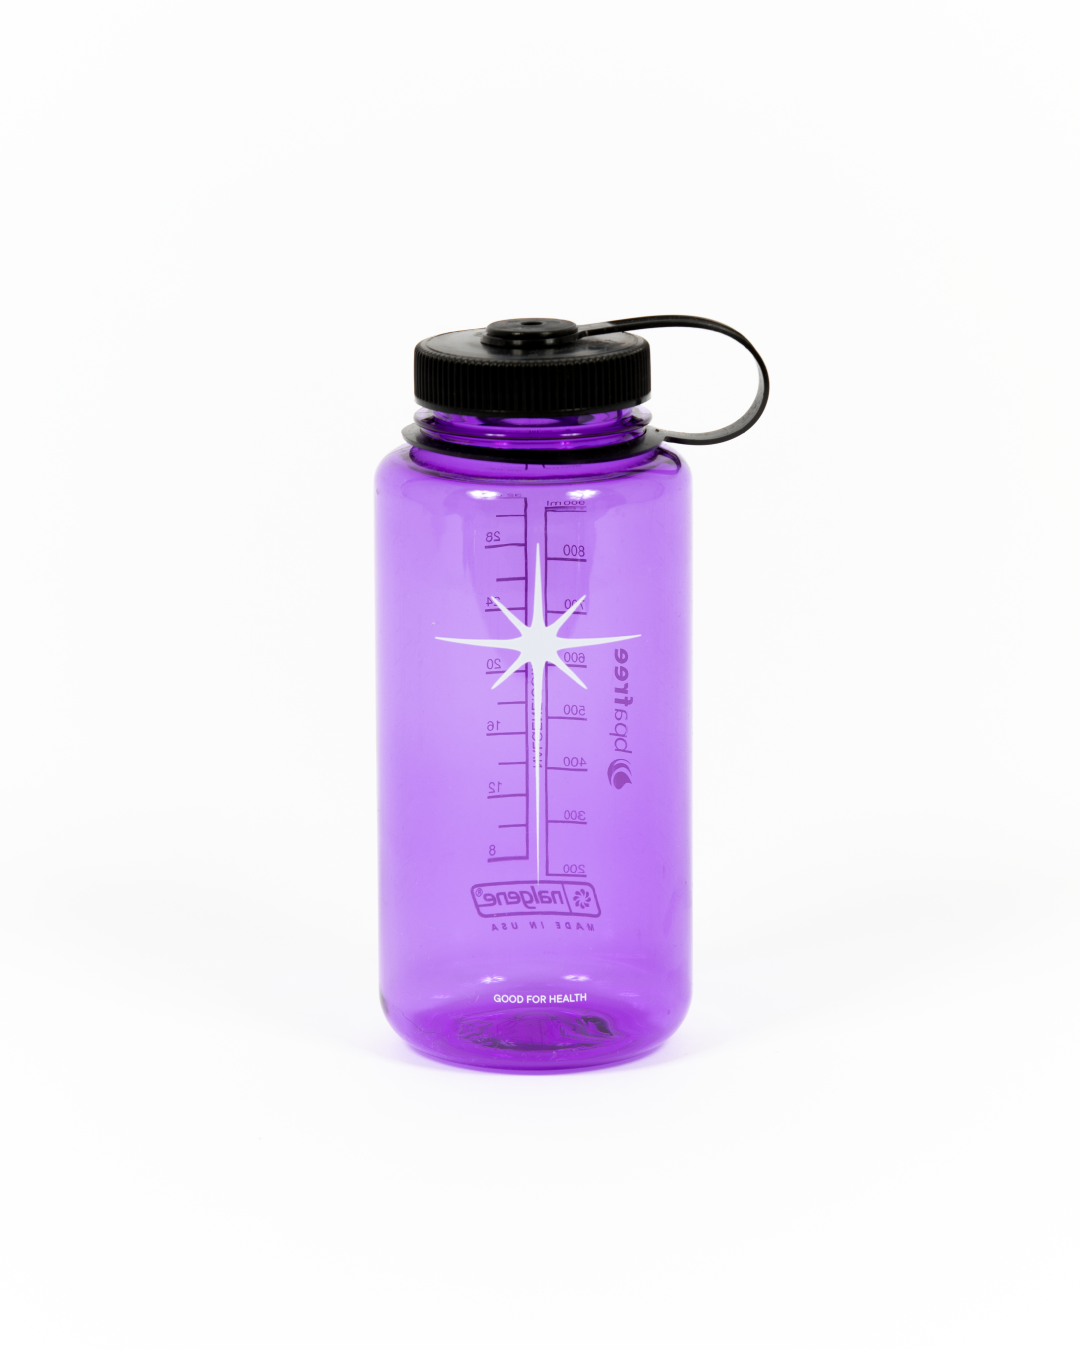 EDEN-power-corp-Nalgene-32oz-Wide-Mouth-Purple-front_1024x1024@2x.png